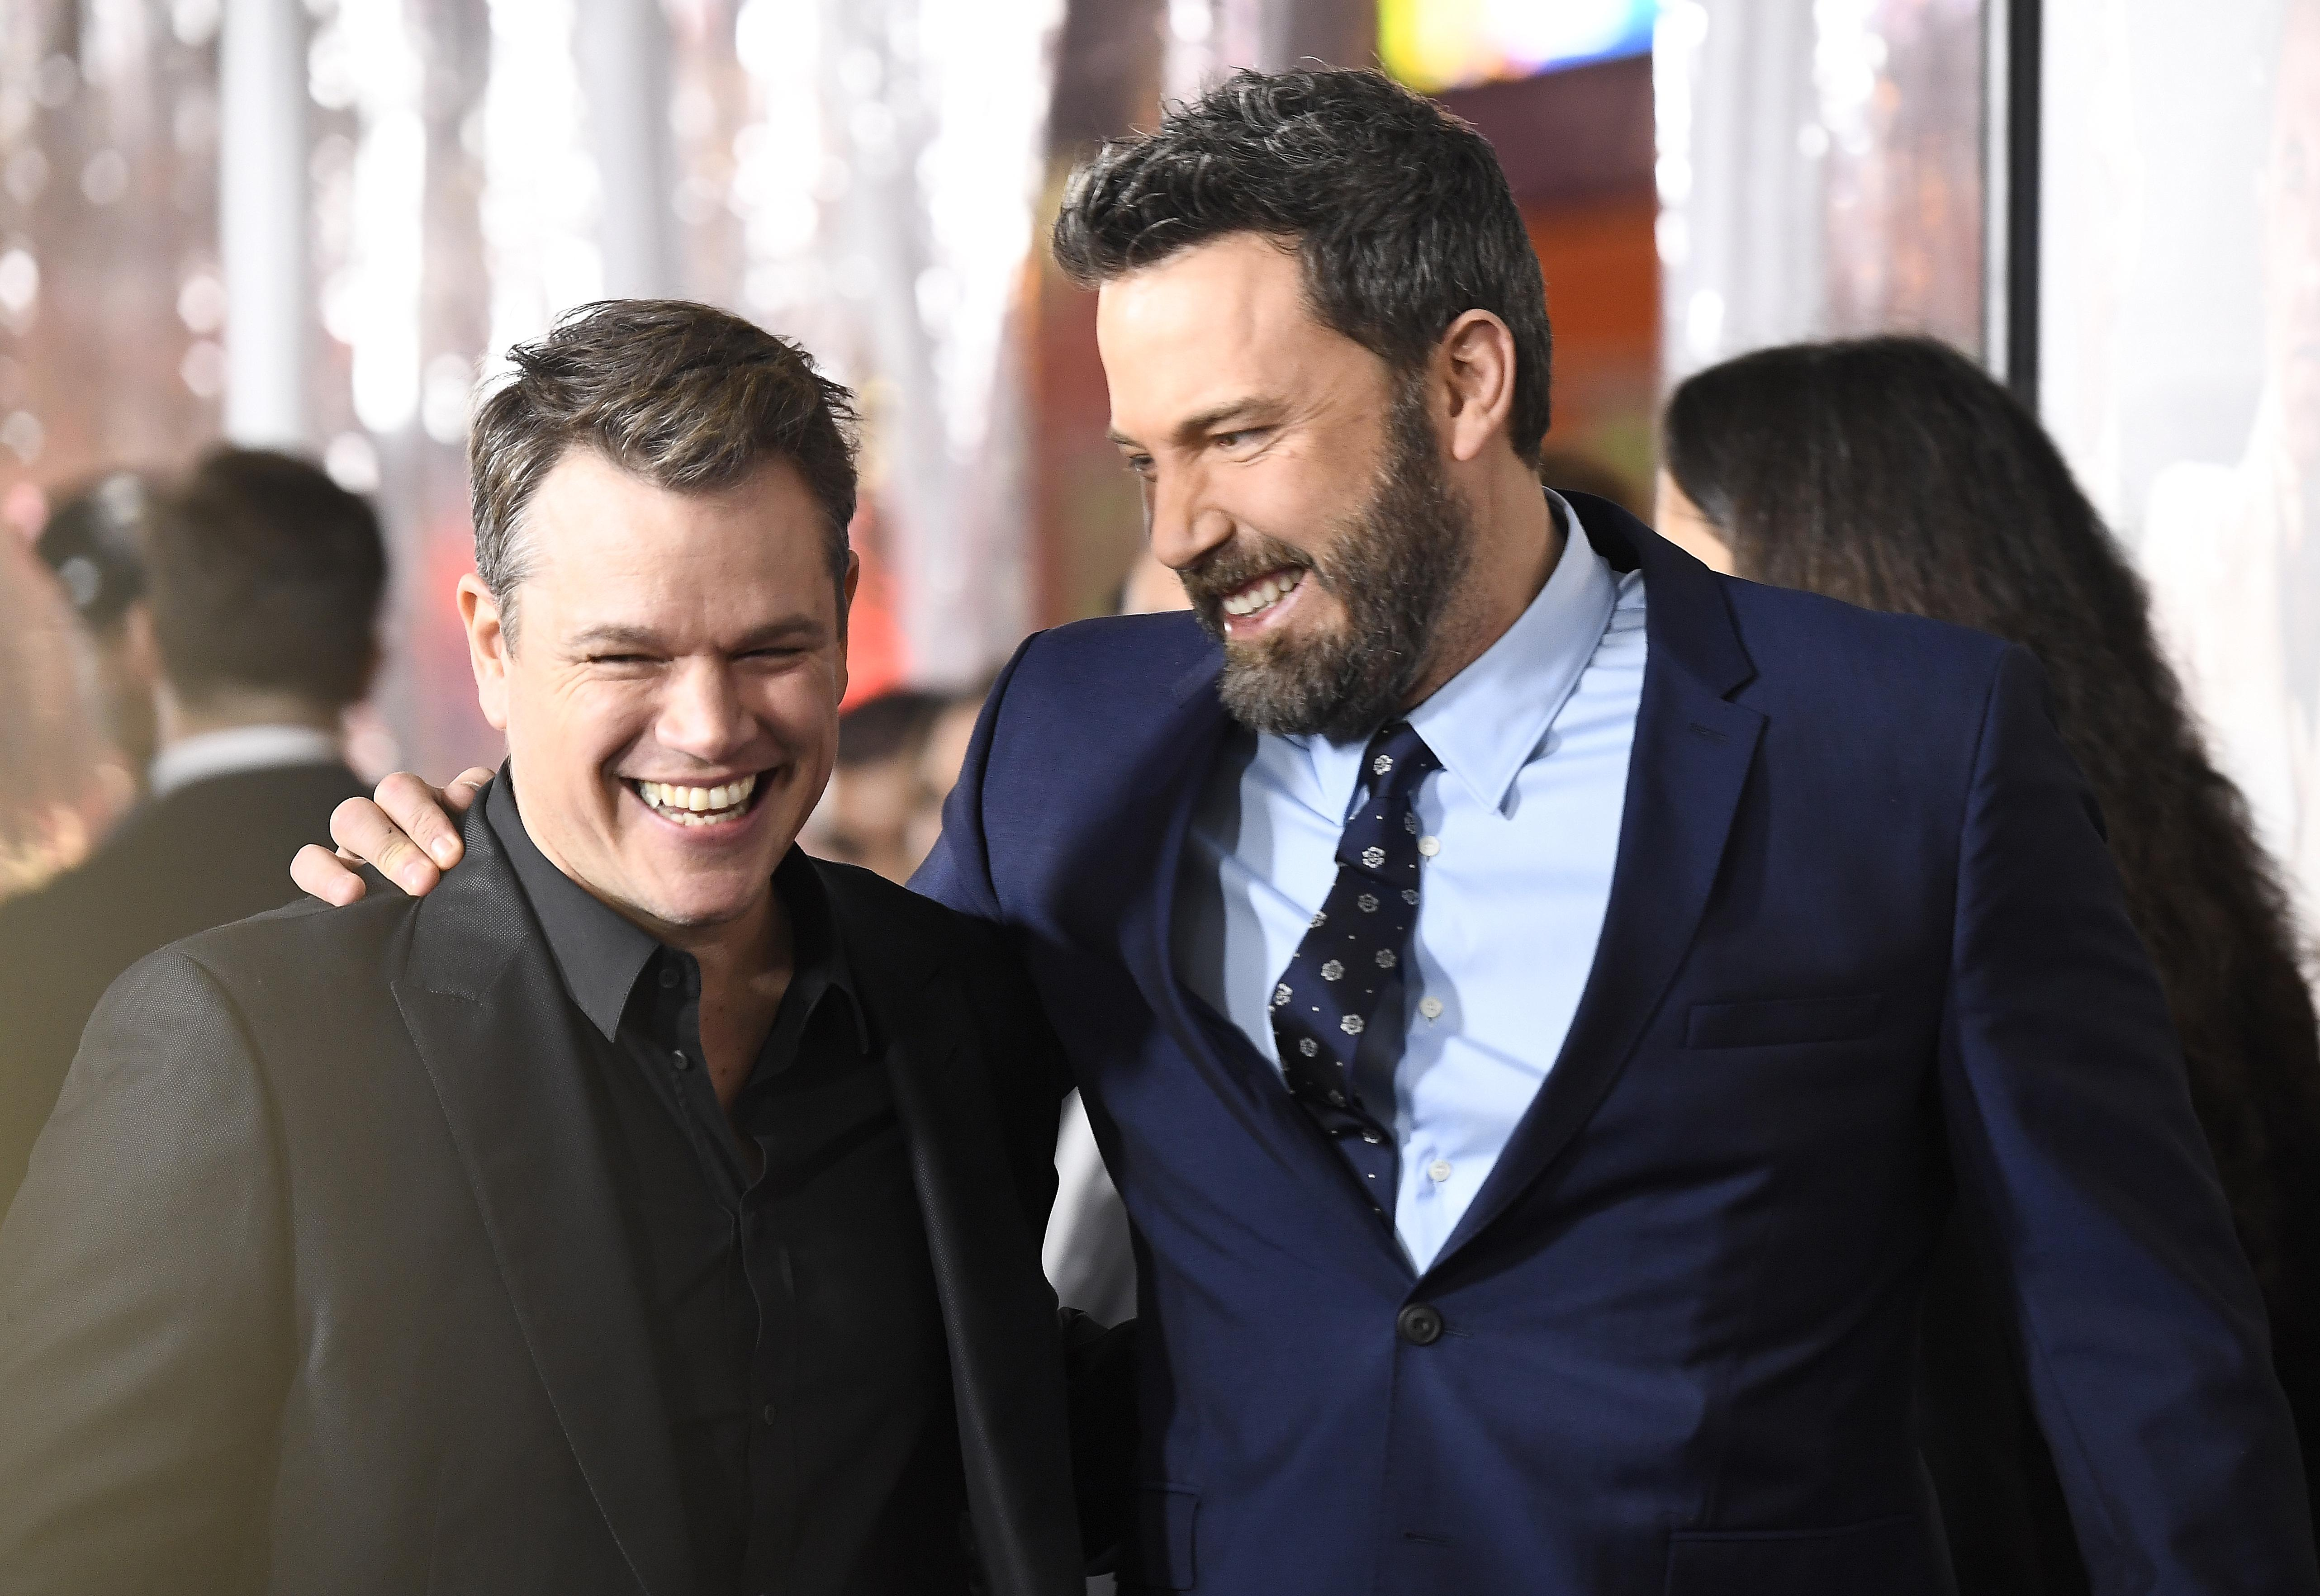 Ben Affleck and Matt Damon have remained close friends since over 40 years